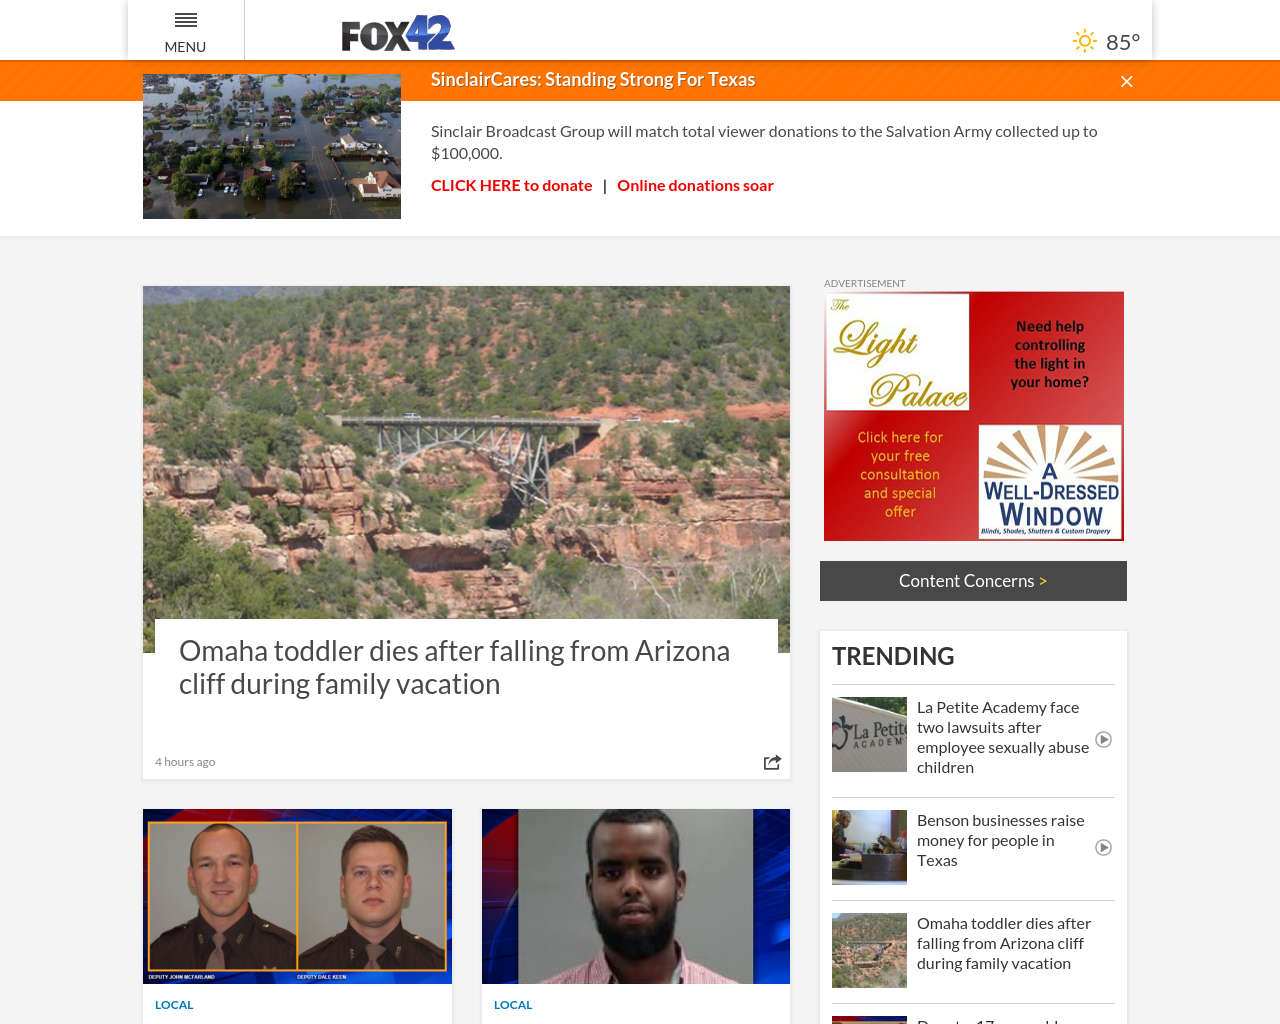 Fox-42-News-Advertising-Reviews-Pricing